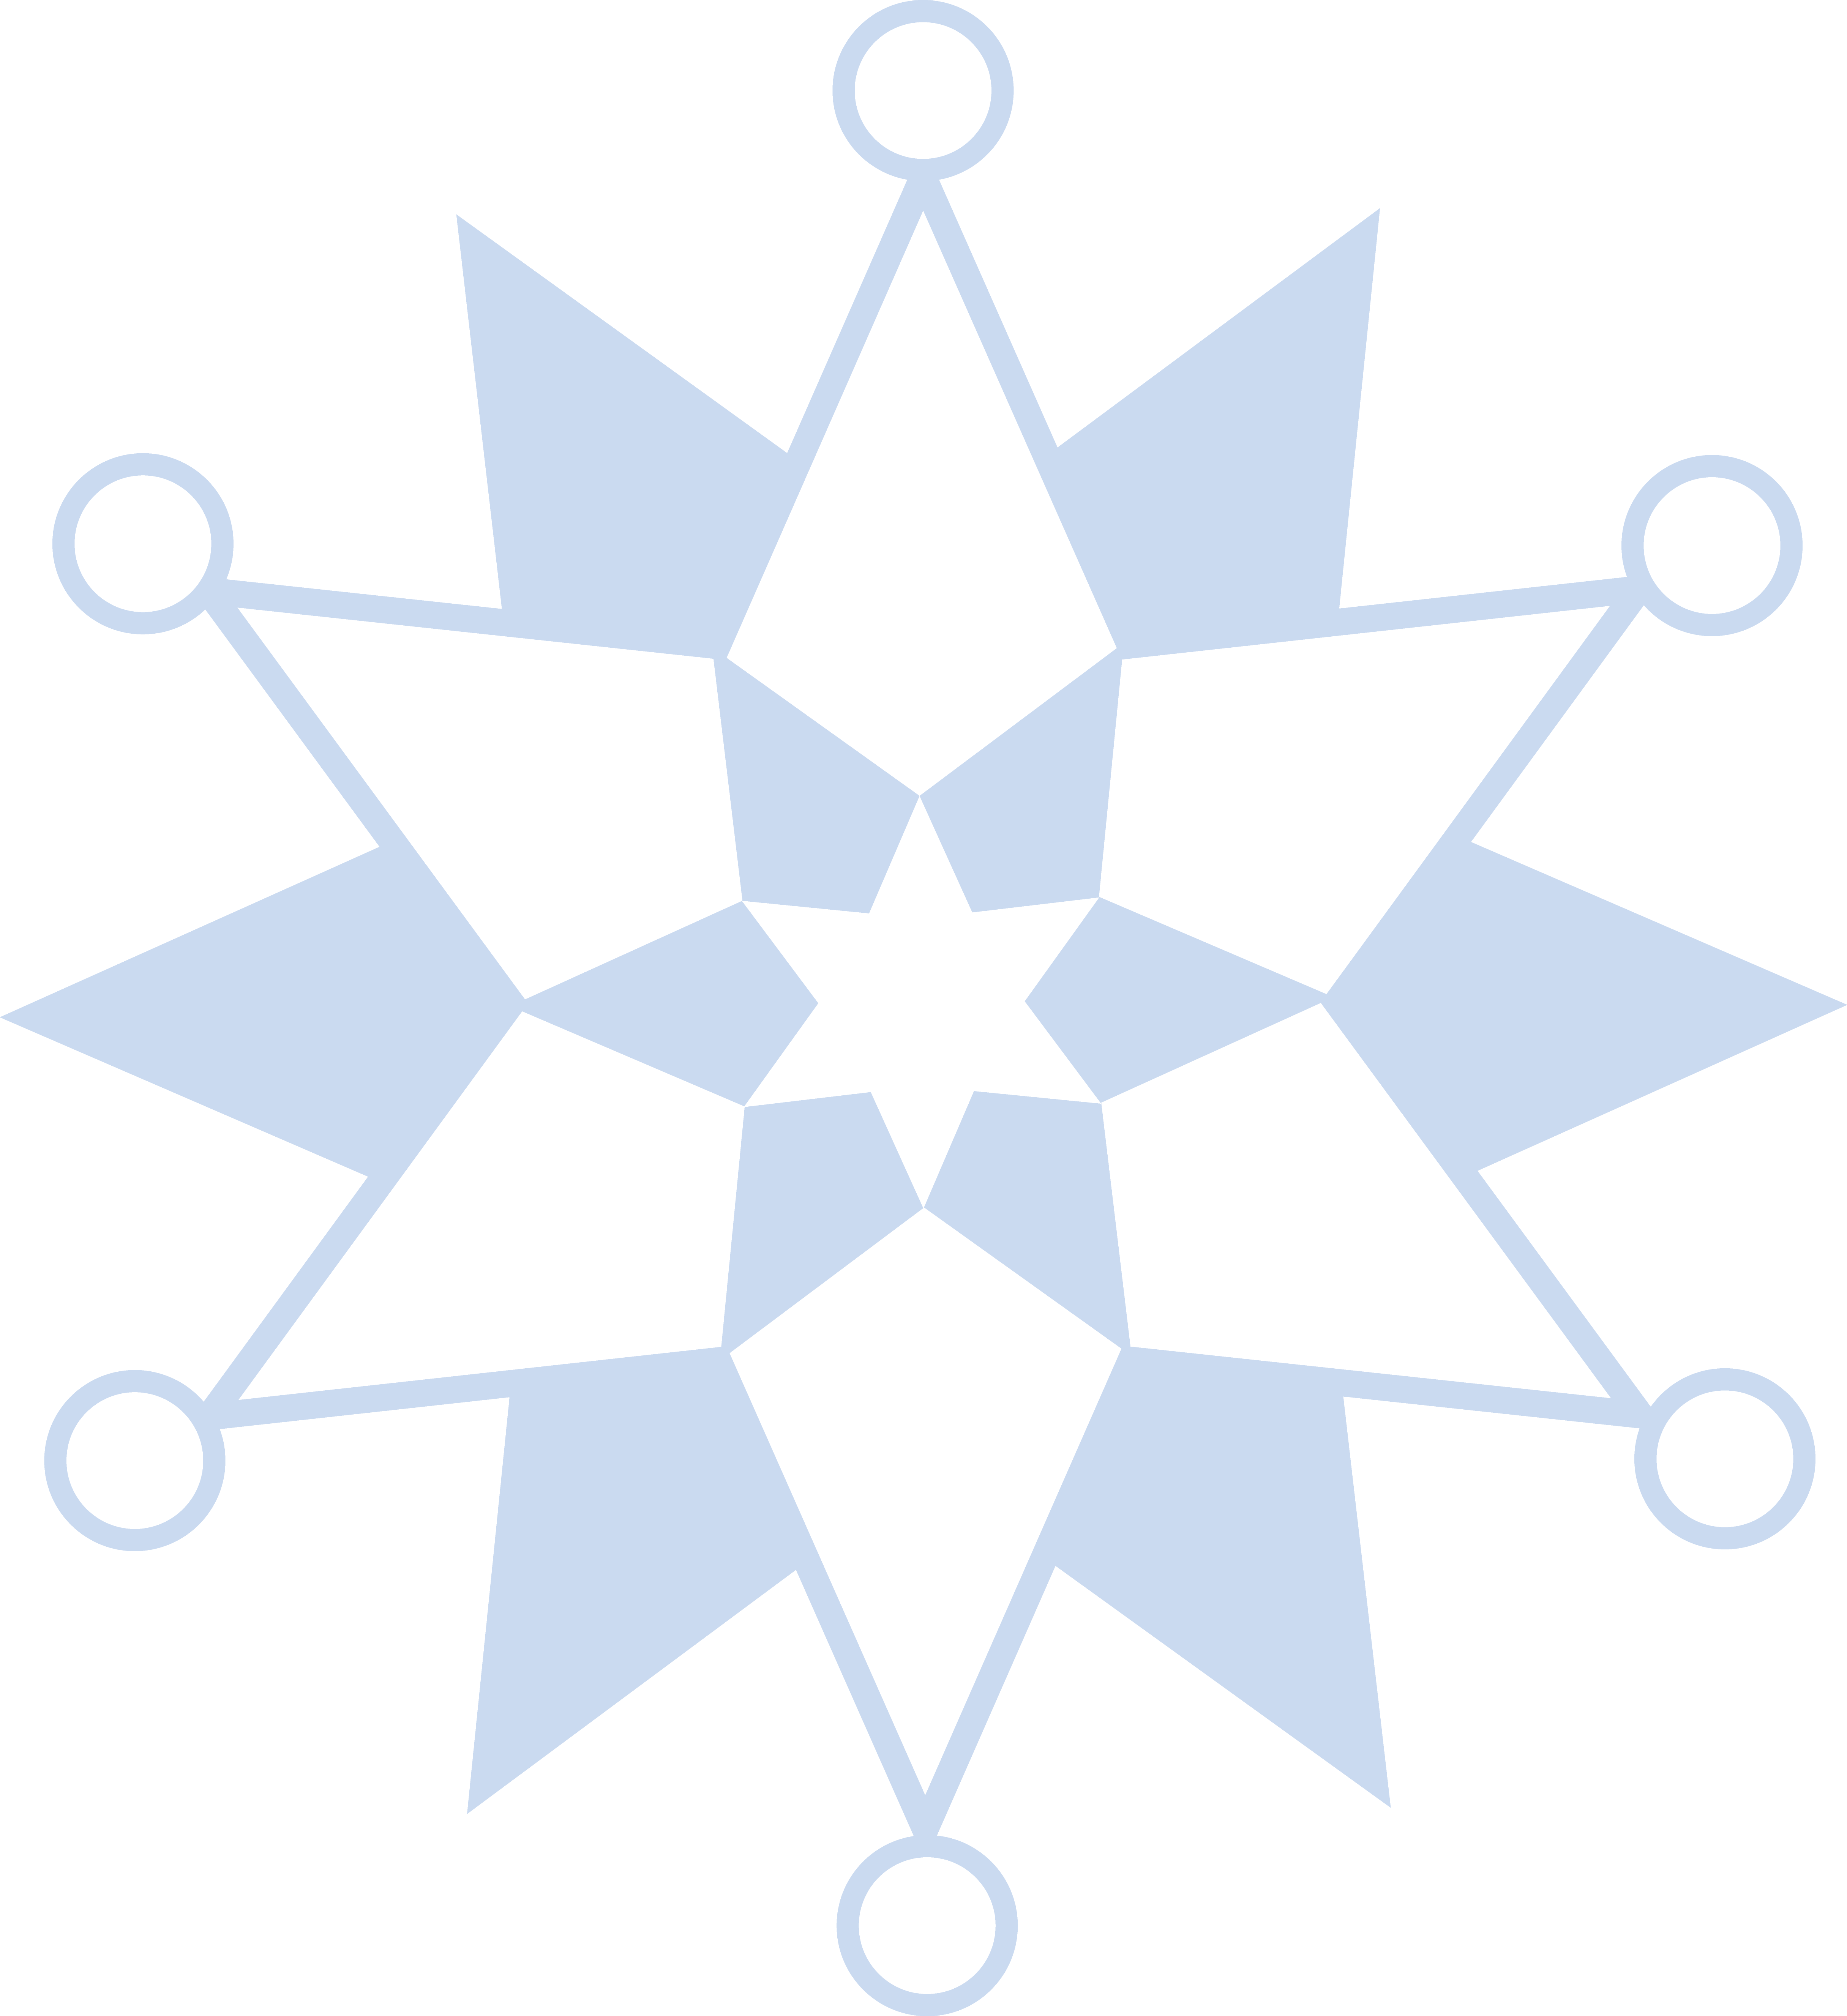 Snowflake design clipart vector freeuse download Winter Snowflake Pattern - Free Clip Art vector freeuse download